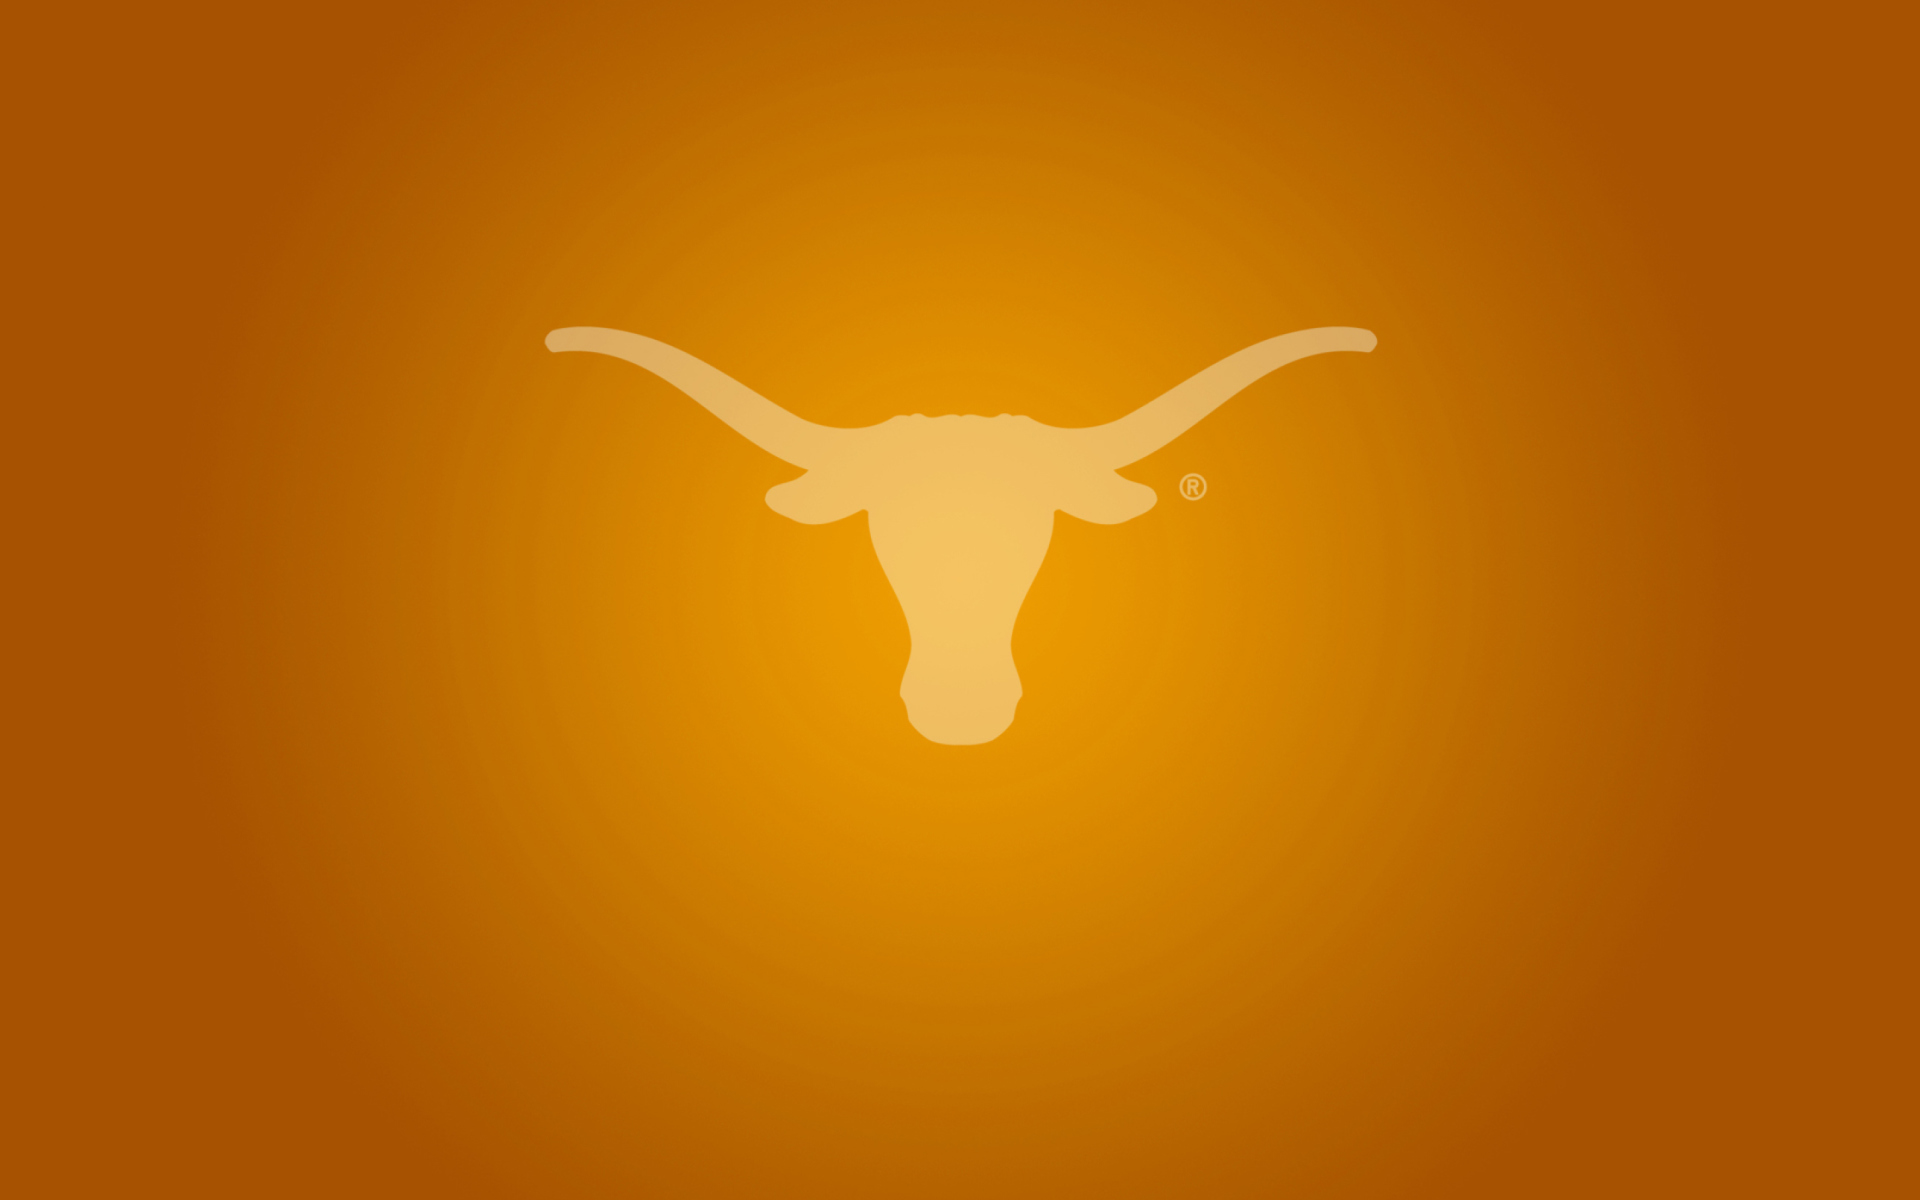 Texas longhorns hd wallpapers full hd pictures - Texas longhorns desktop background ...